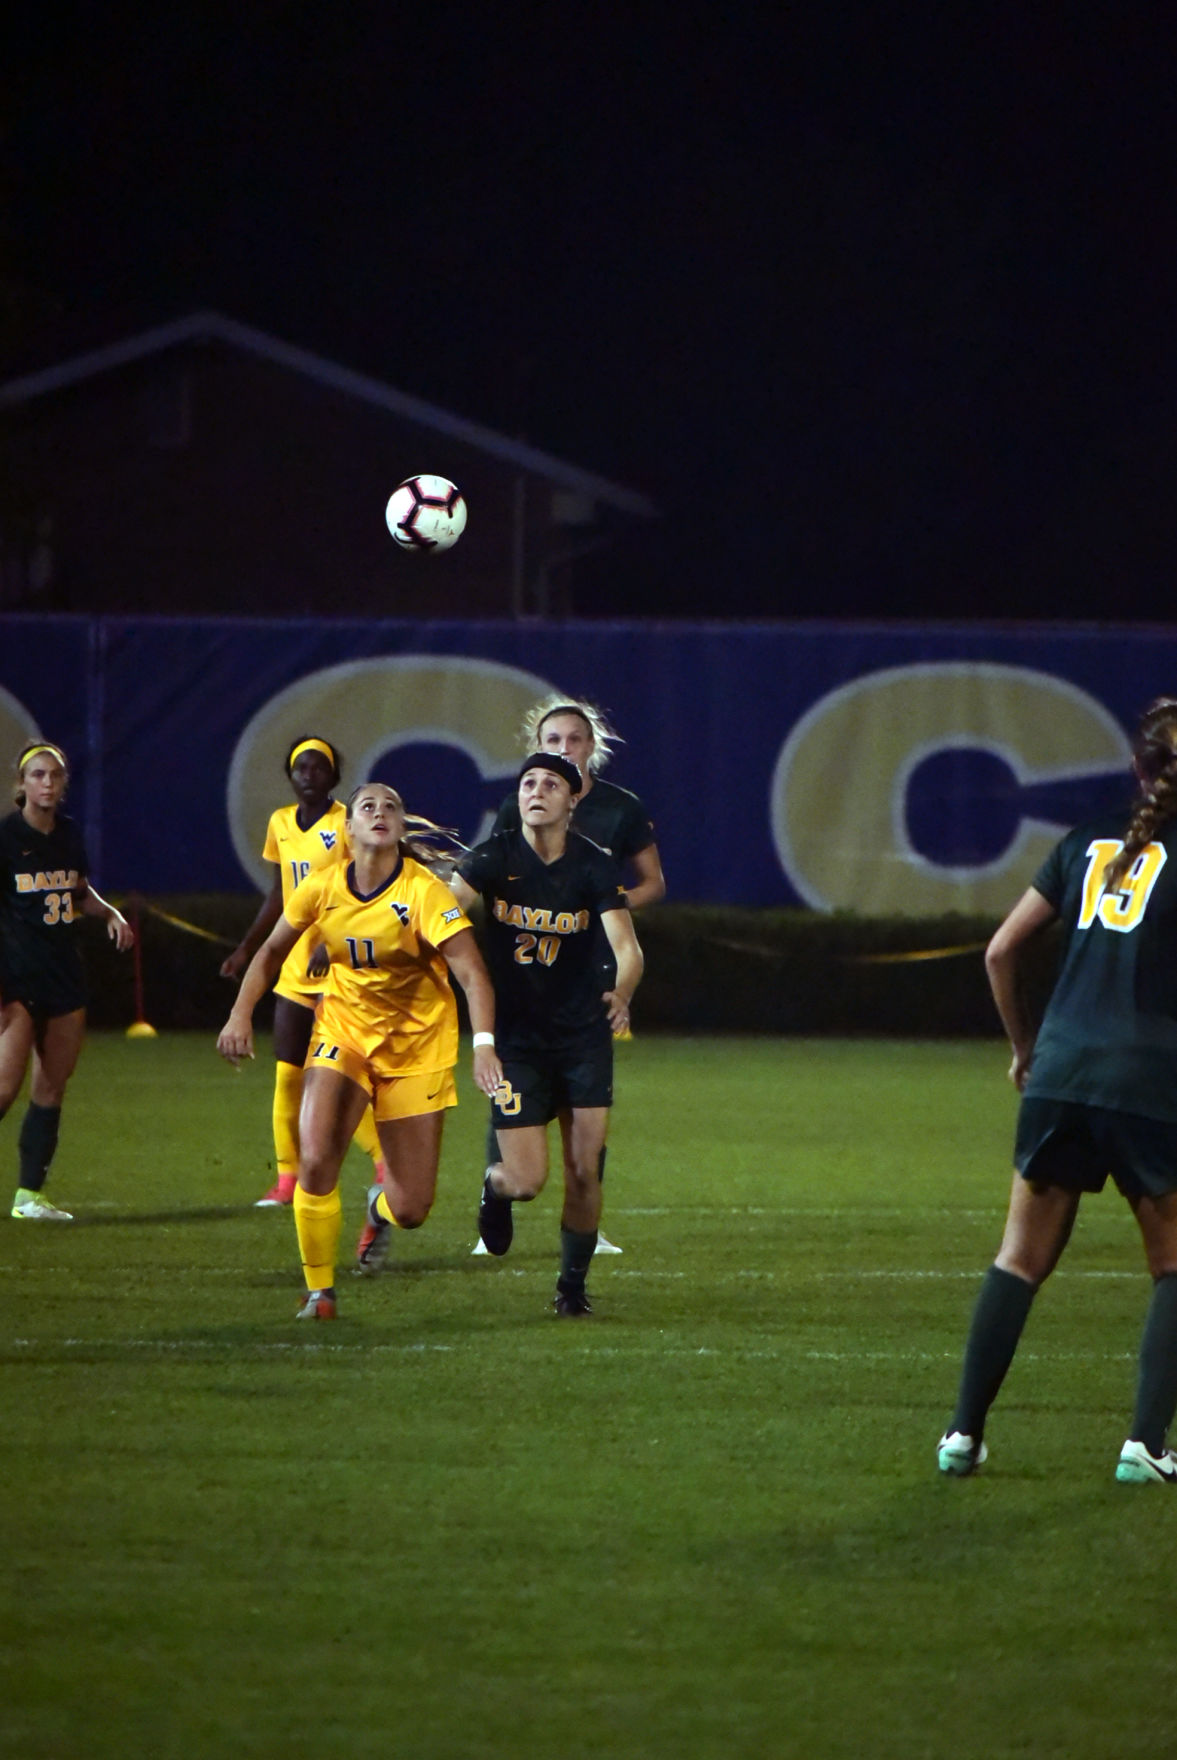 WVU midfielder Addison Clark eyes the ball as she competes with Baylor midfielder Julie James to get there.